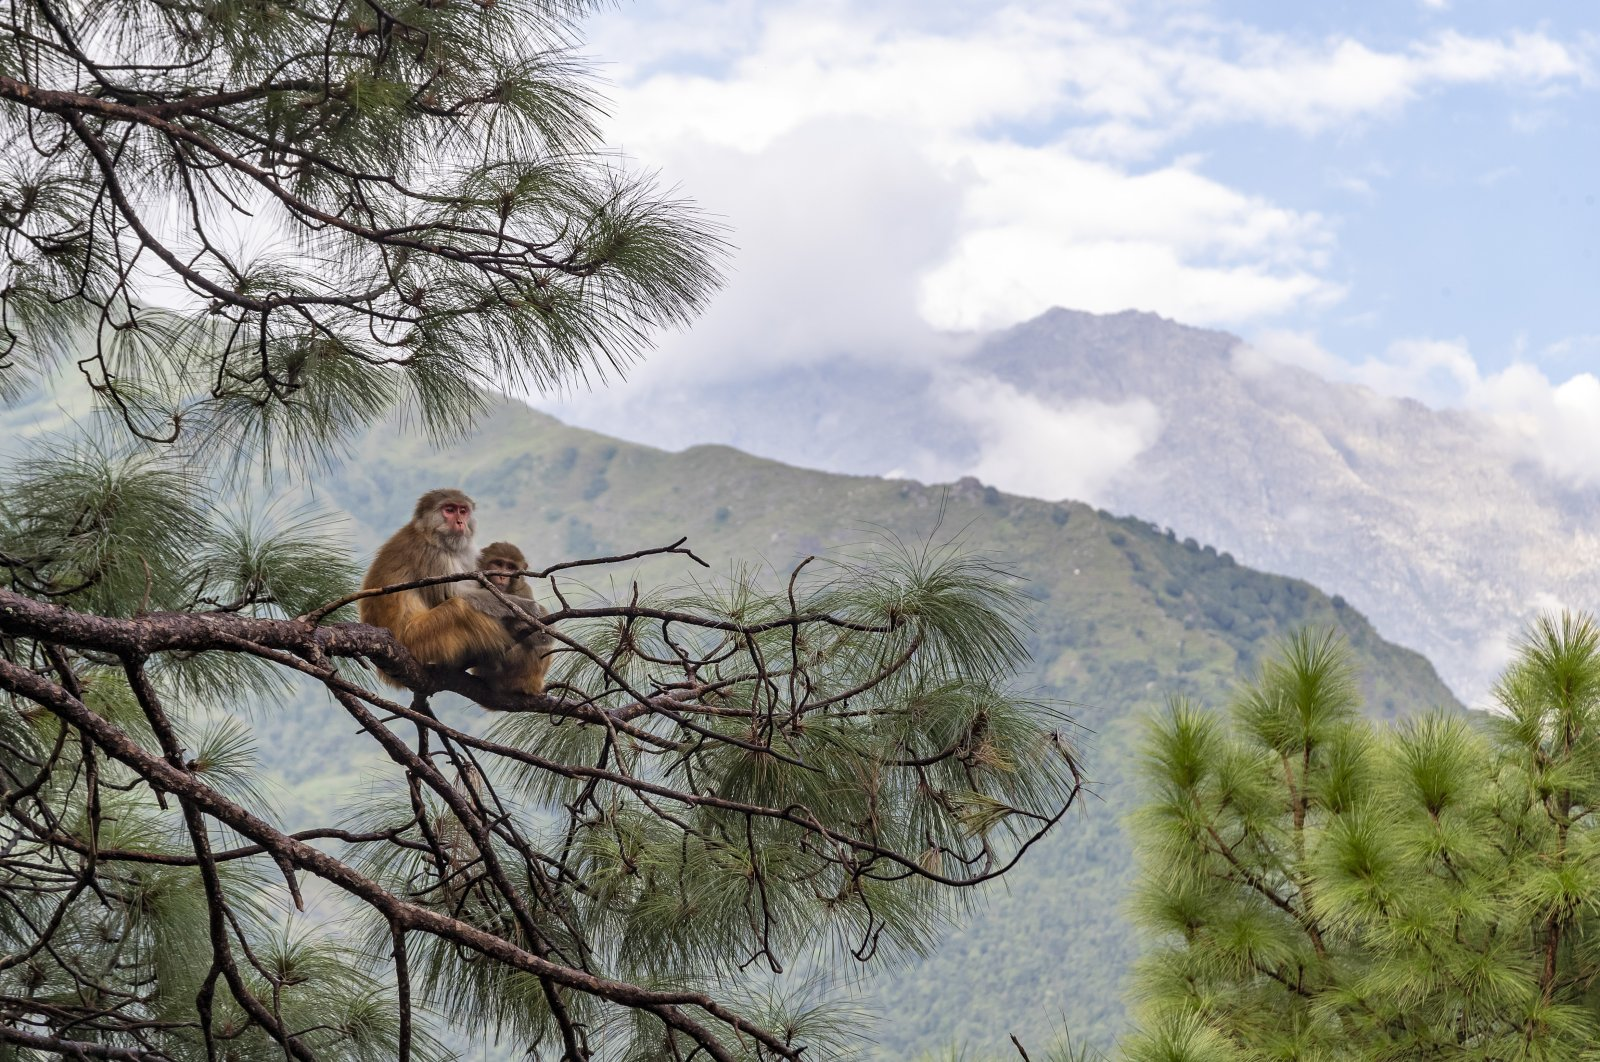 A pair of macaques sit on a pine tree against a backdrop of the Dhauladhar range of the Himalayas in Dharmsala, India, Friday, Sept. 11, 2020. (AP Photo)